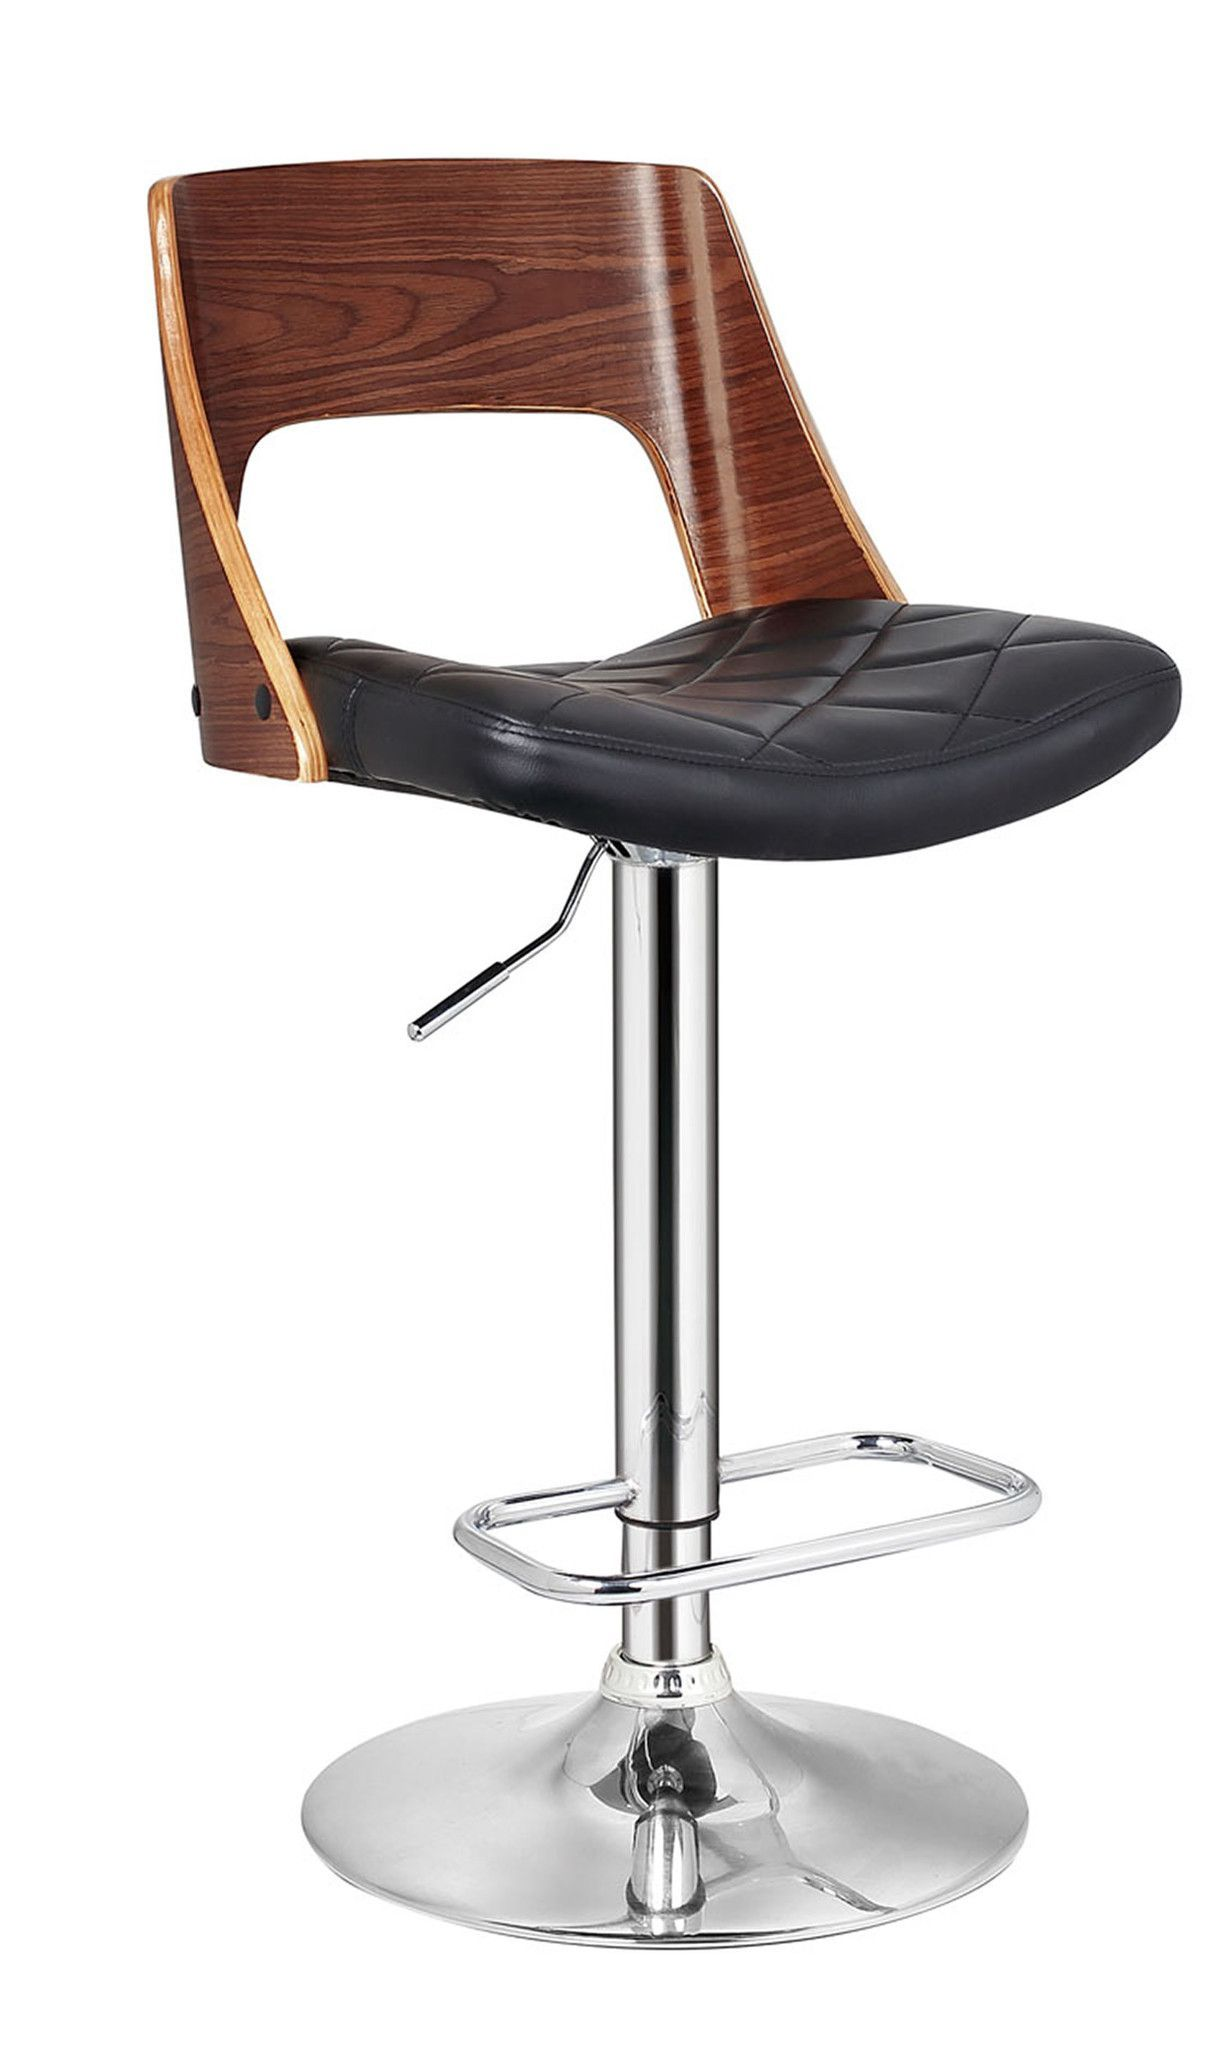 Stylish Wood Back Adjustable Swivel Barstool With Diamond Quilted Seat Add A Touch Of Vintage Style To Your Bar Swivel Bar Stools Bar Stools Retro Bar Stools